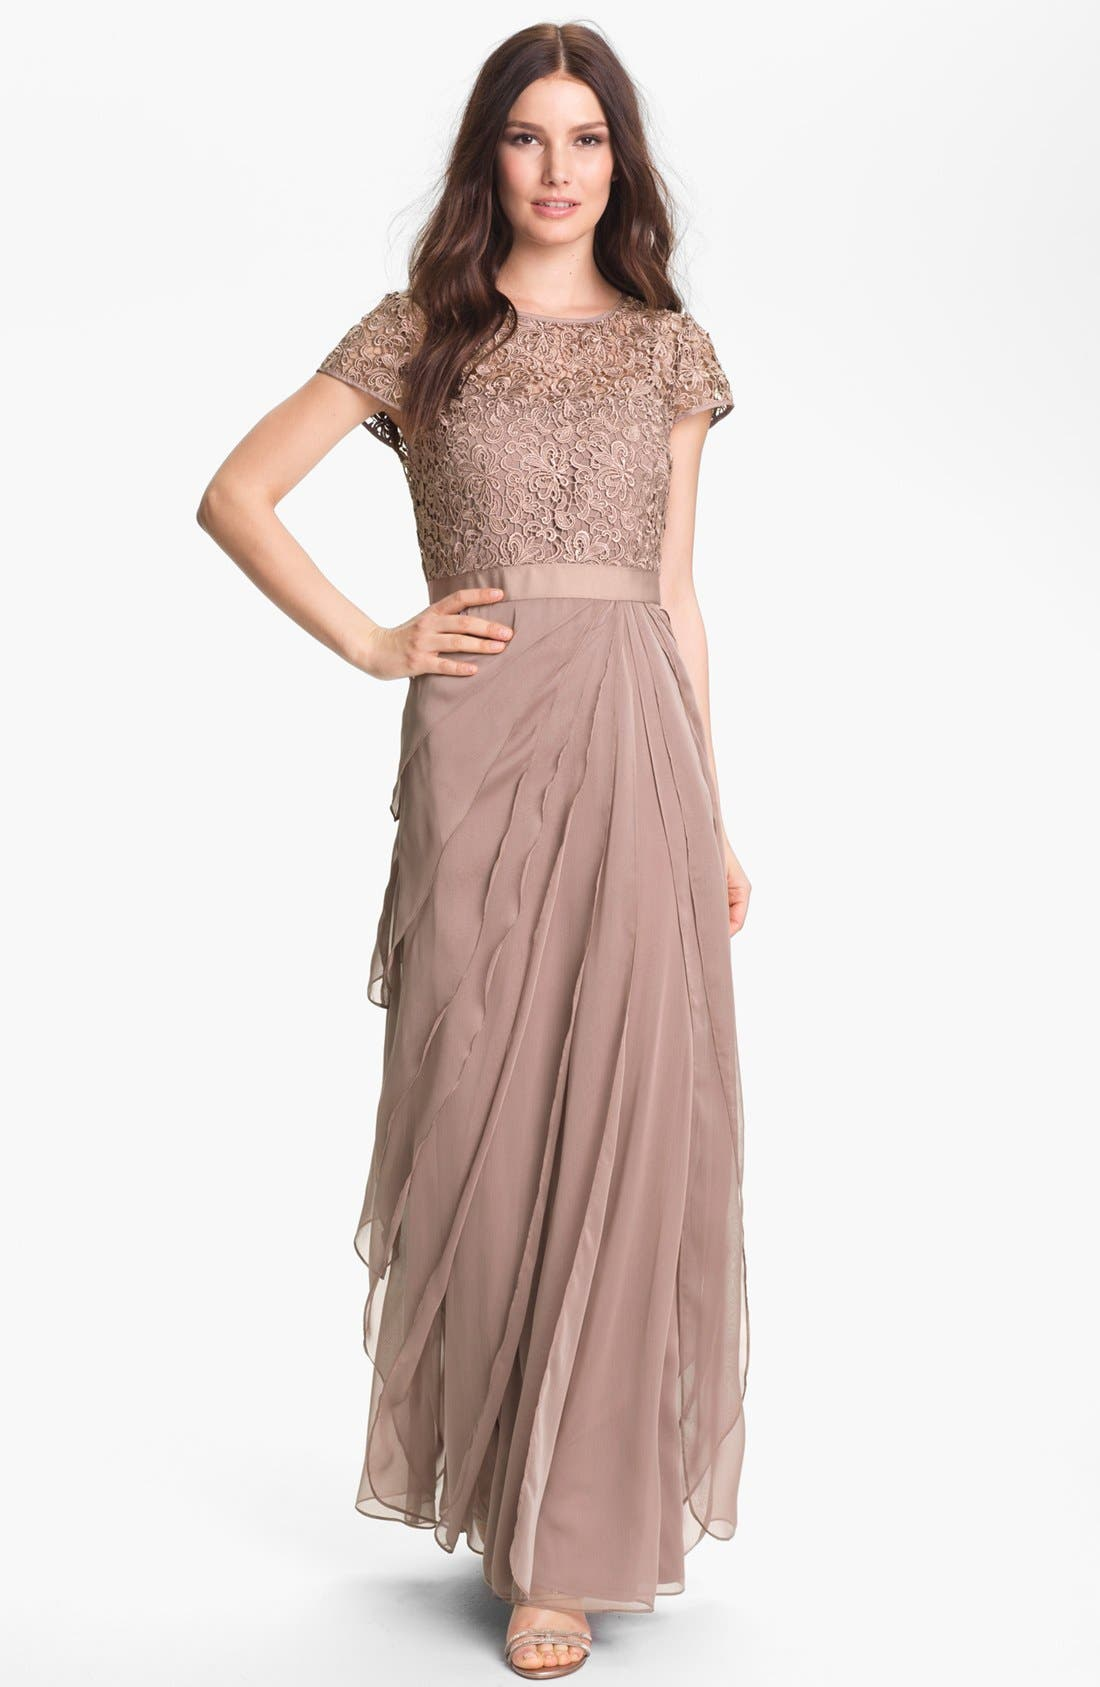 Alternate Image 1 Selected - Adrianna Papell Layered Chiffon & Lace Gown